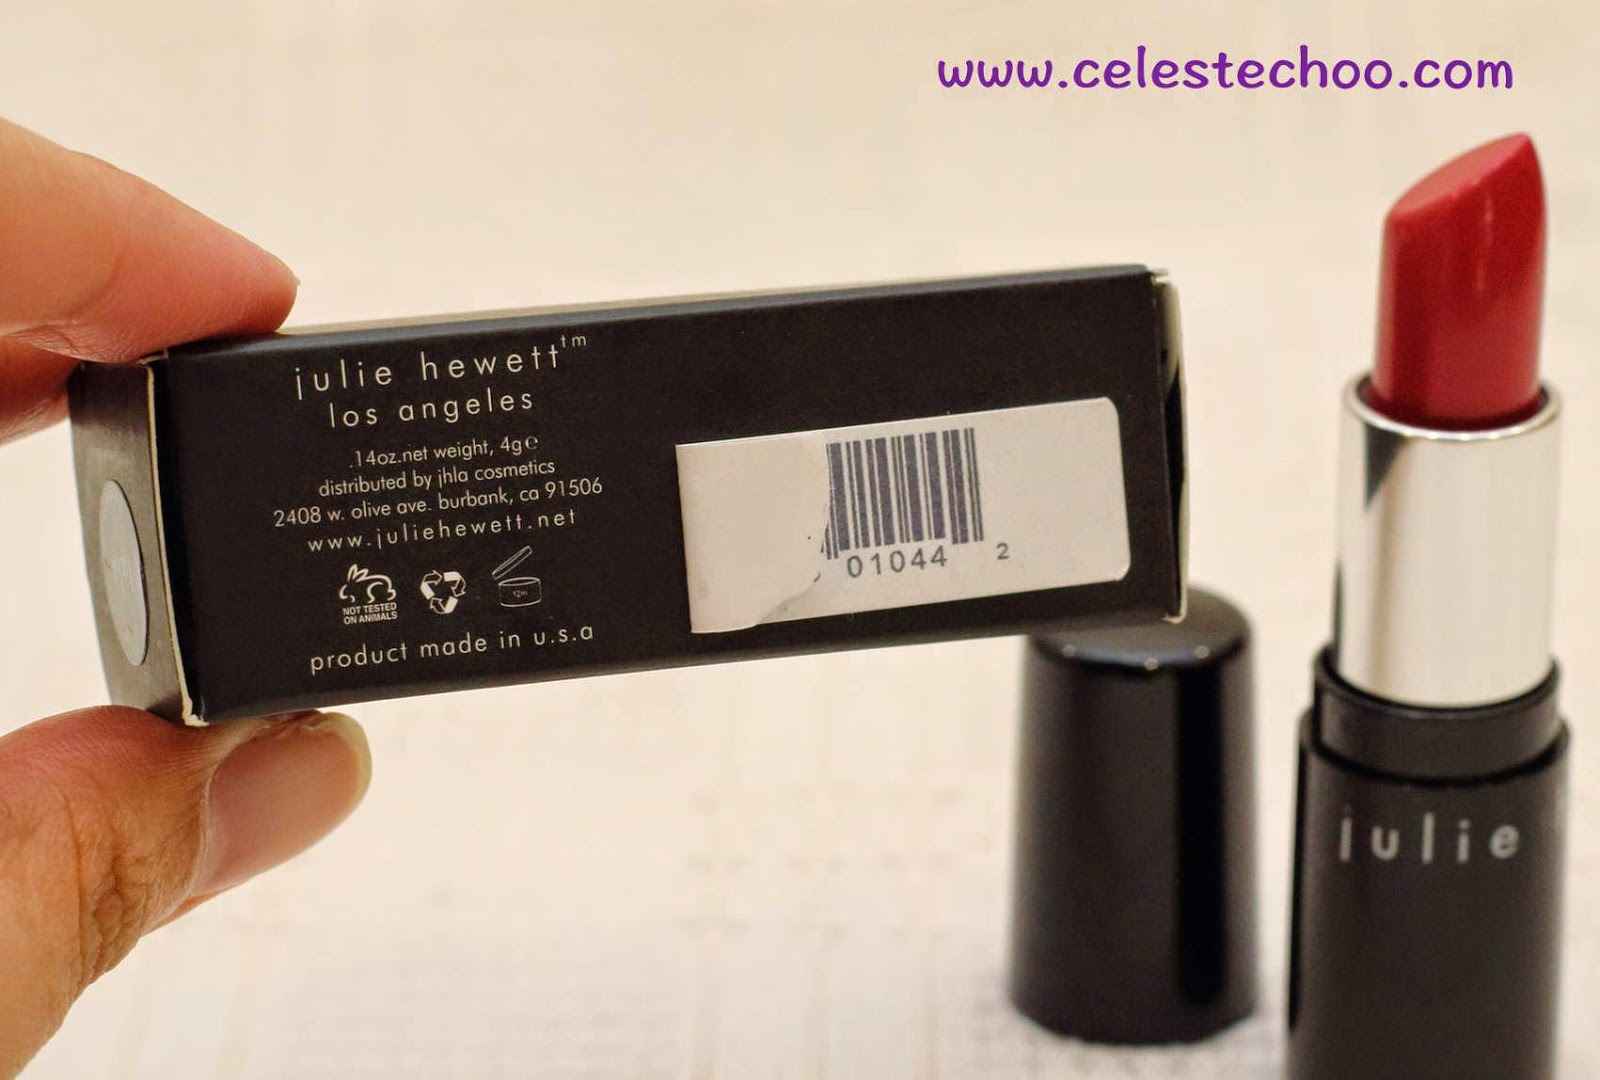 julie-hewett-bijou-collection-lipstick-made-in-usa